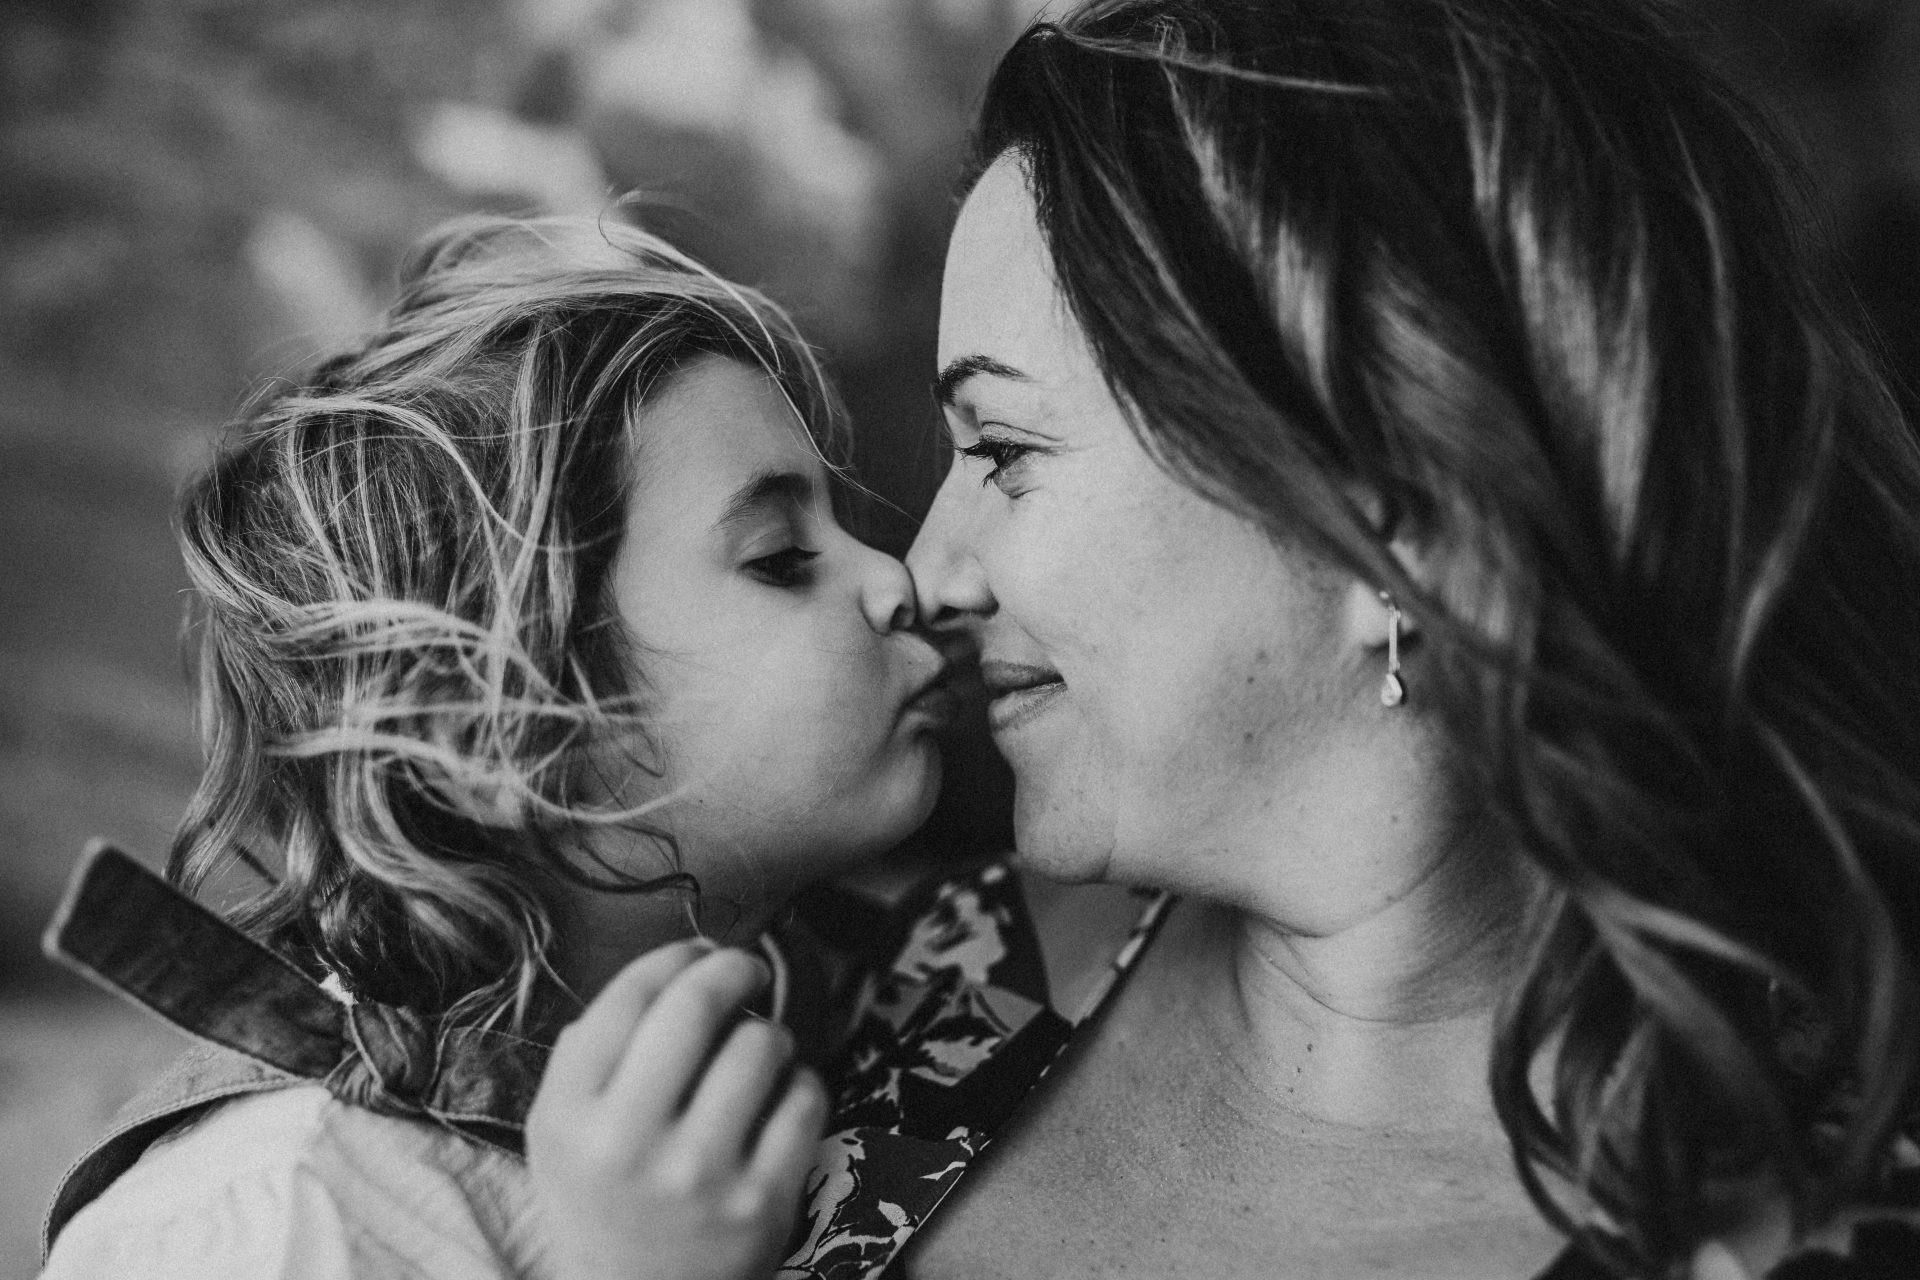 Black and white image of woman and her daughter touching noses